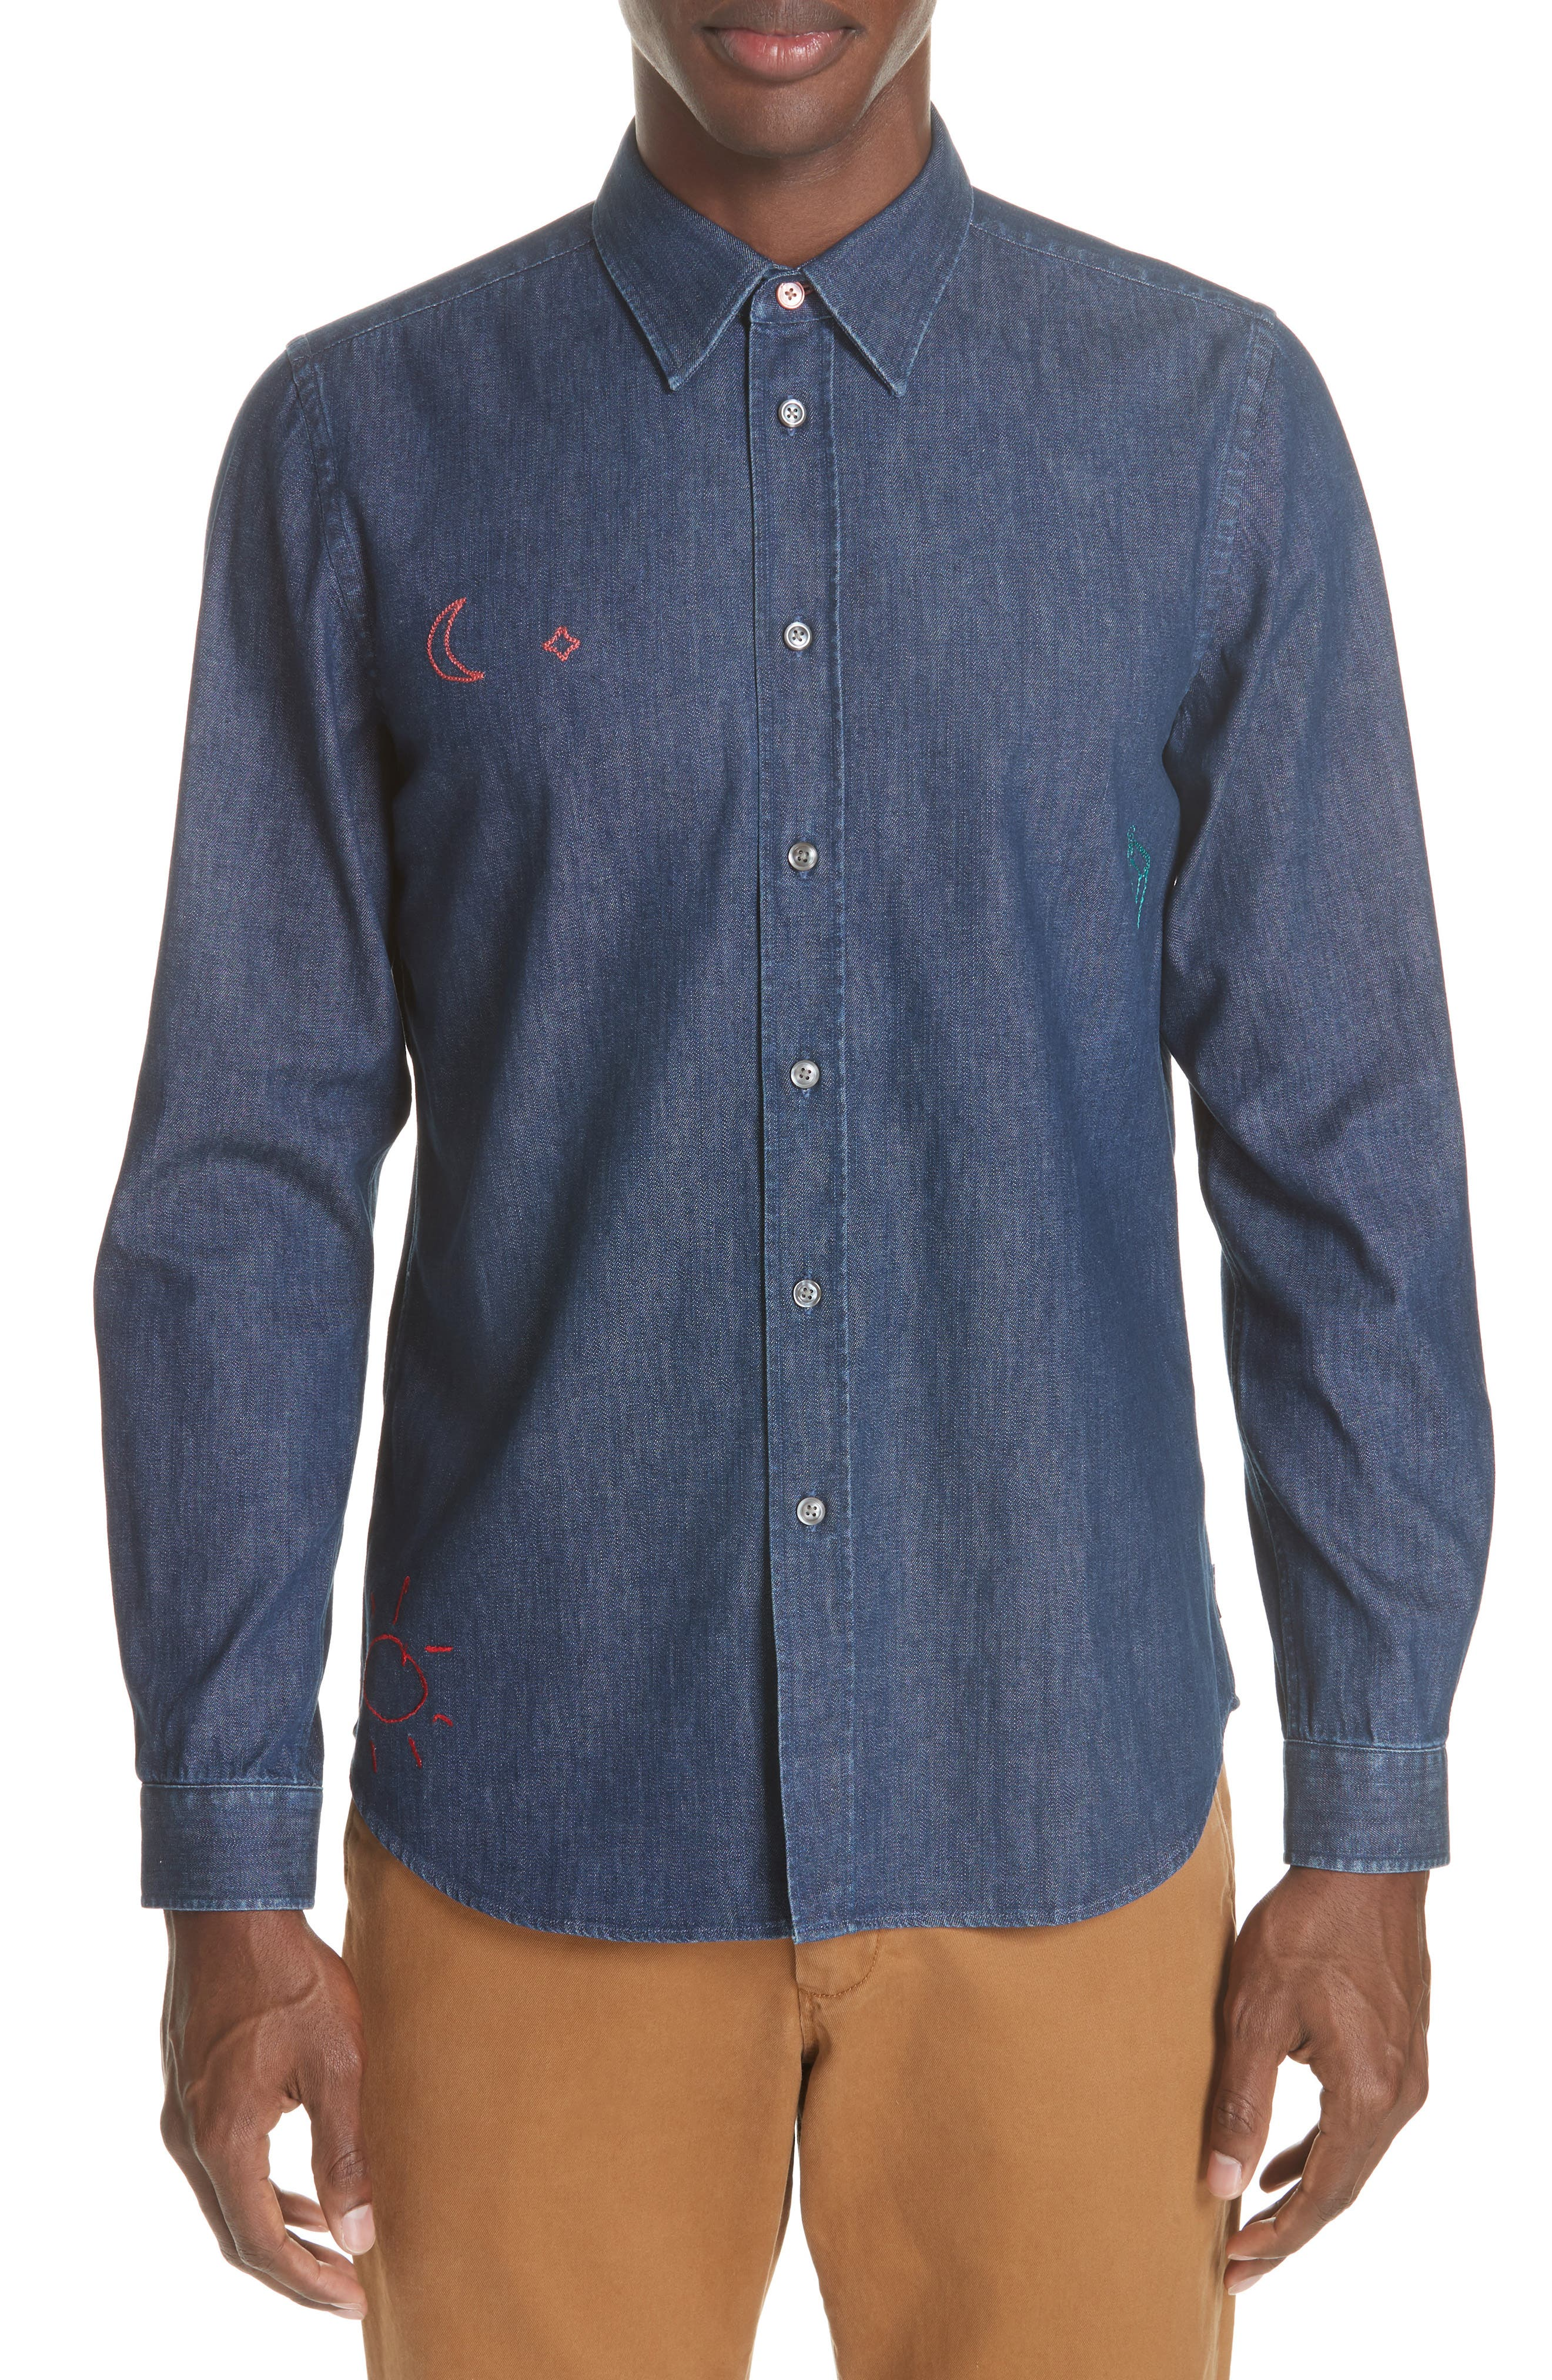 PS PAUL SMITH,                             Denim Shirt with Embroidery,                             Main thumbnail 1, color,                             427